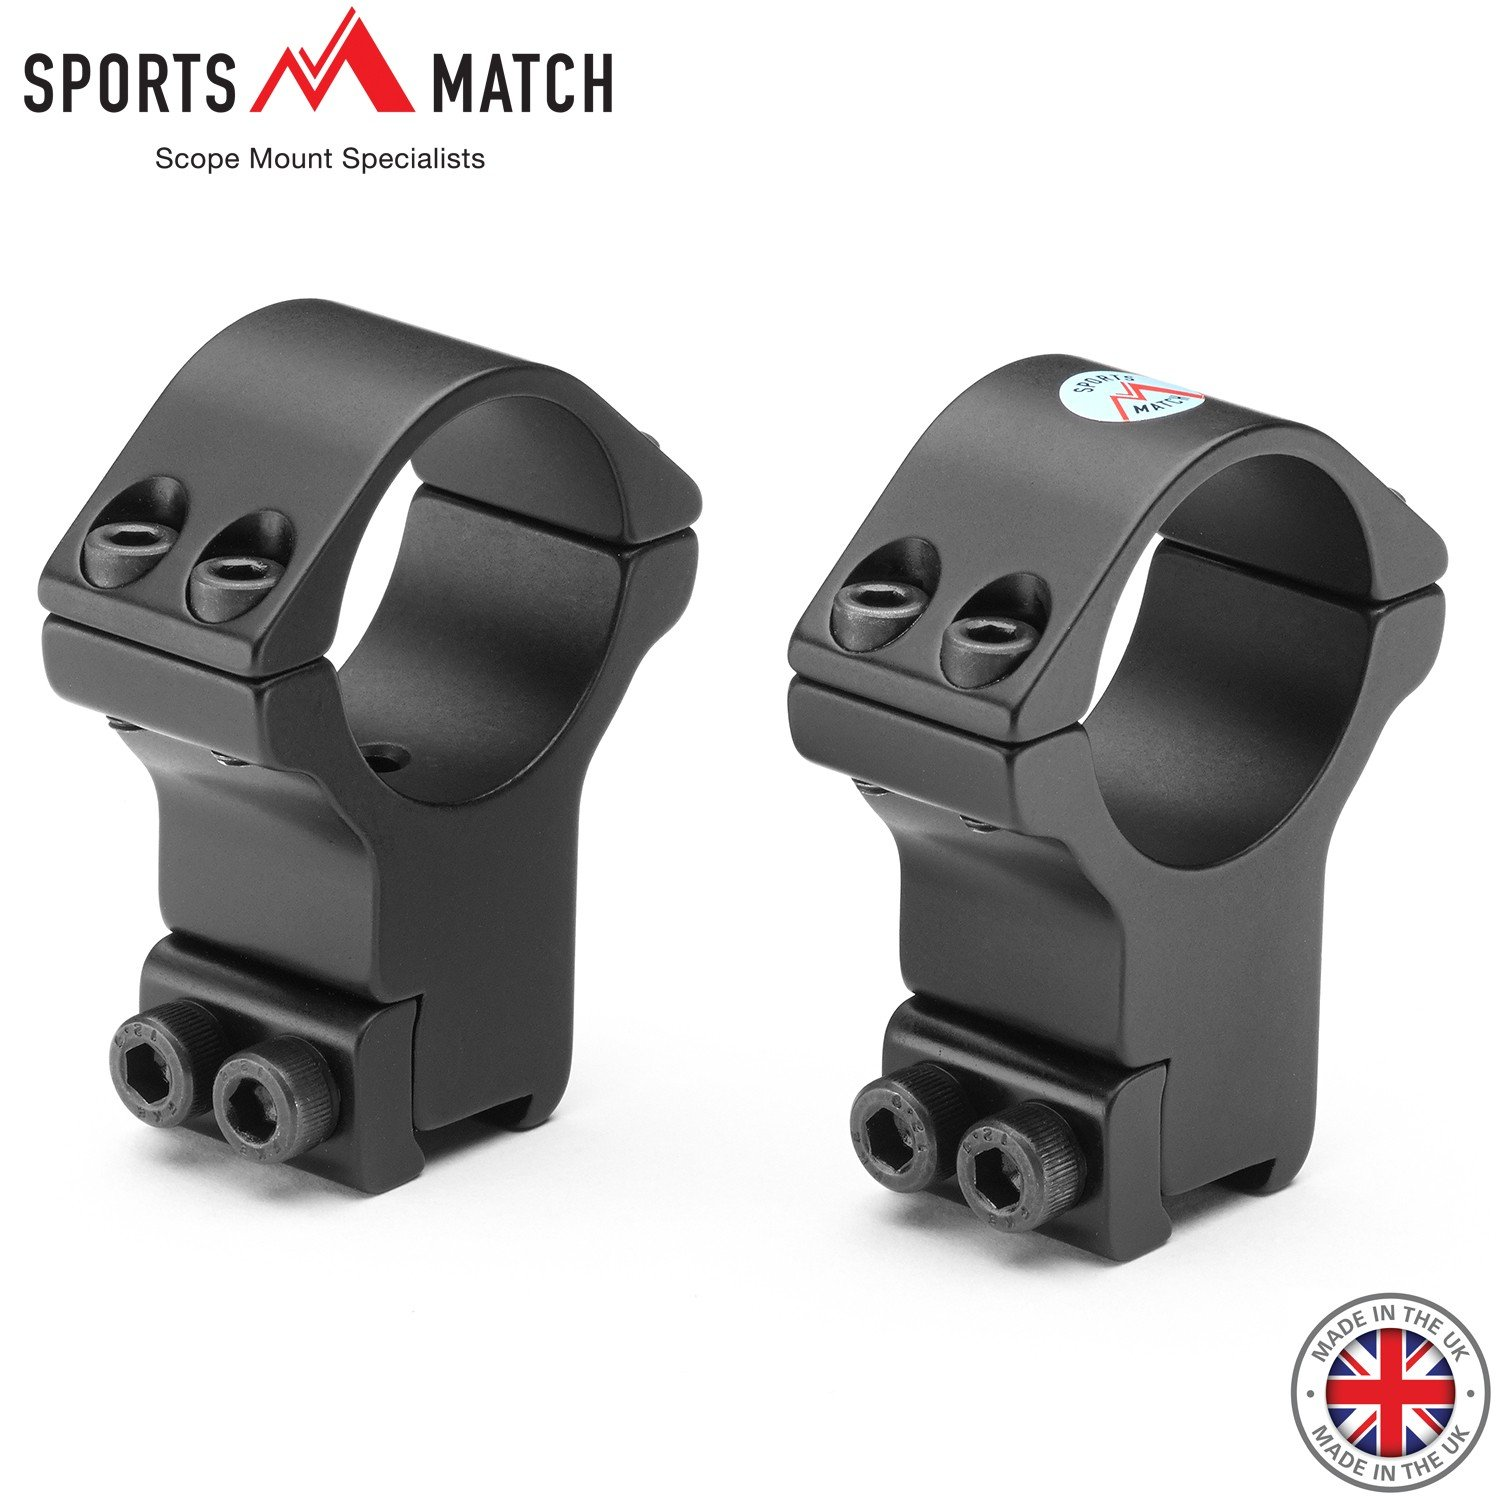 SPORTSMATCH 2PC 30mm EXTRA HIGH Mount